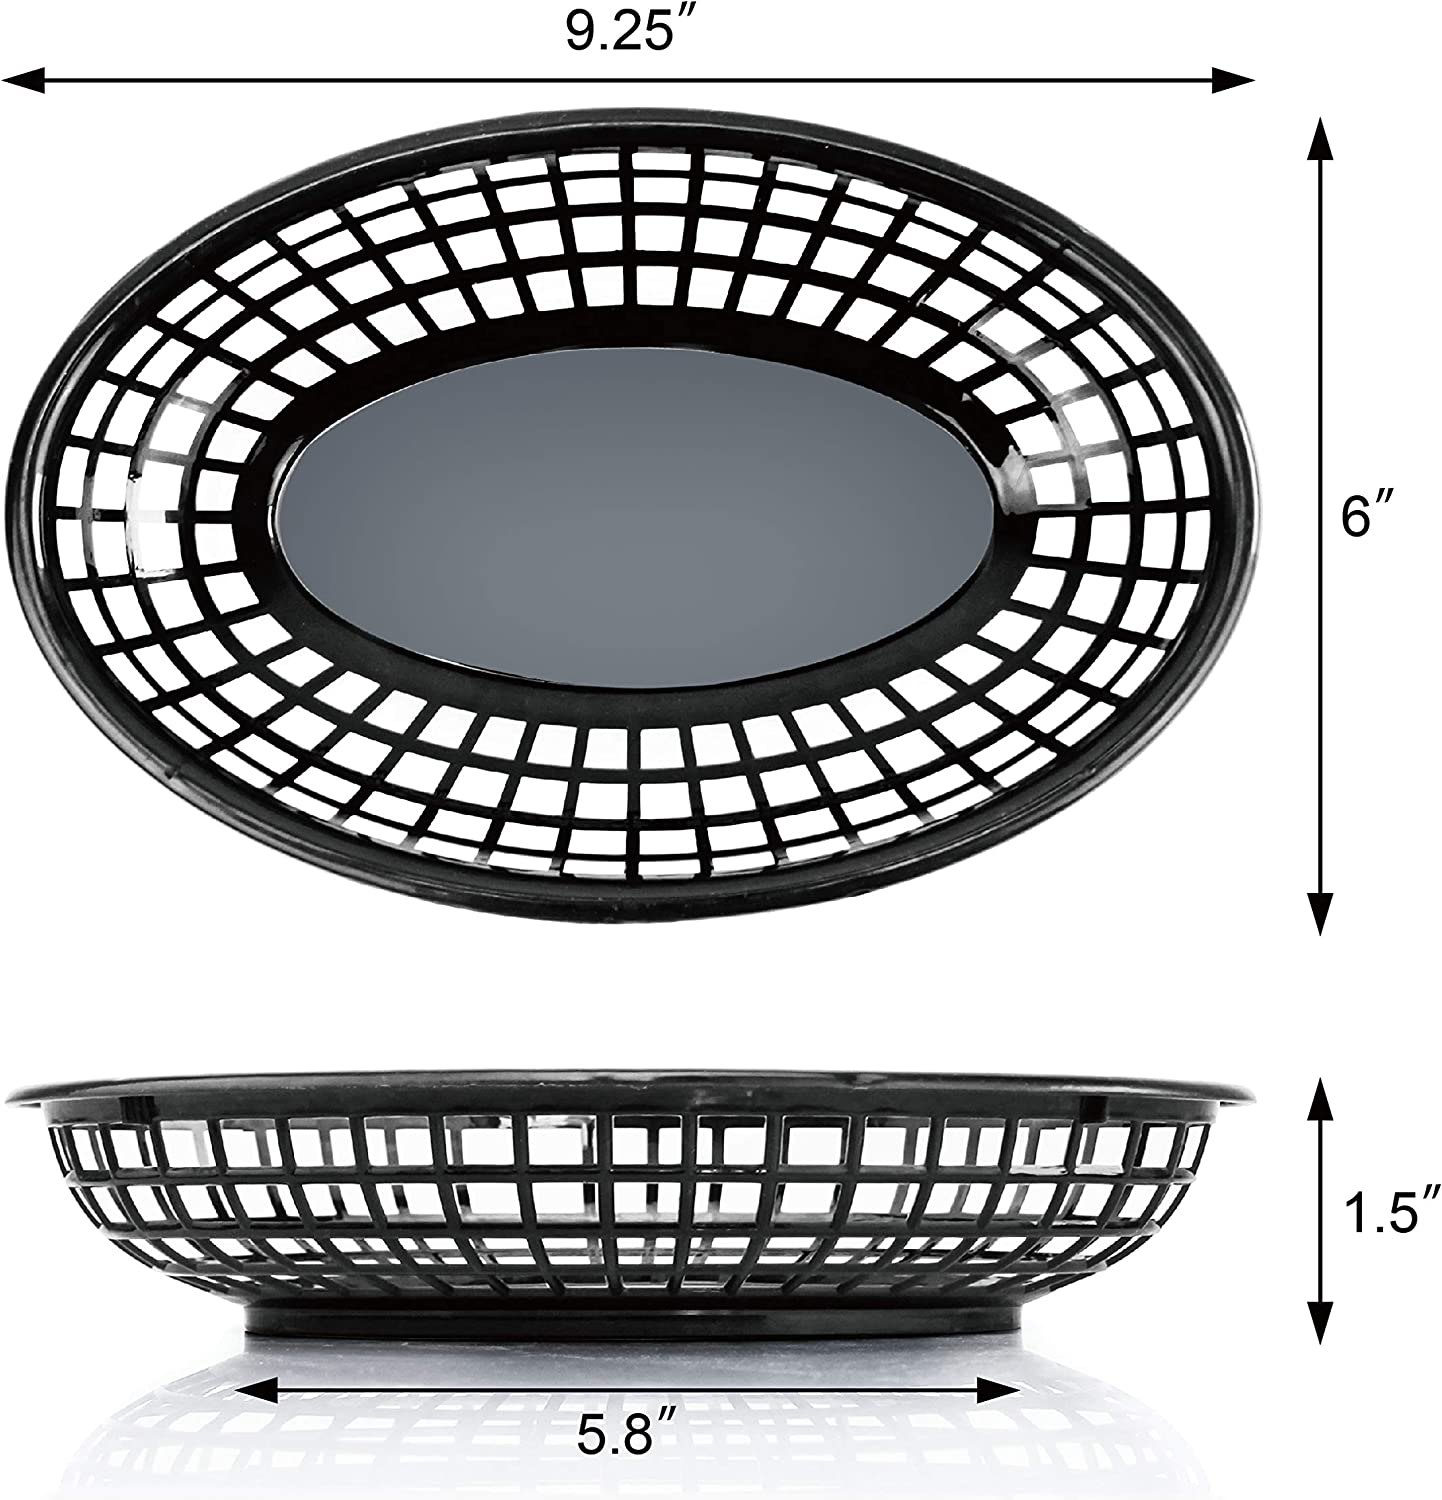 9.25 x 6 inch Oval New Star Foodservice 44157 Fast Food Baskets Set of 36,...